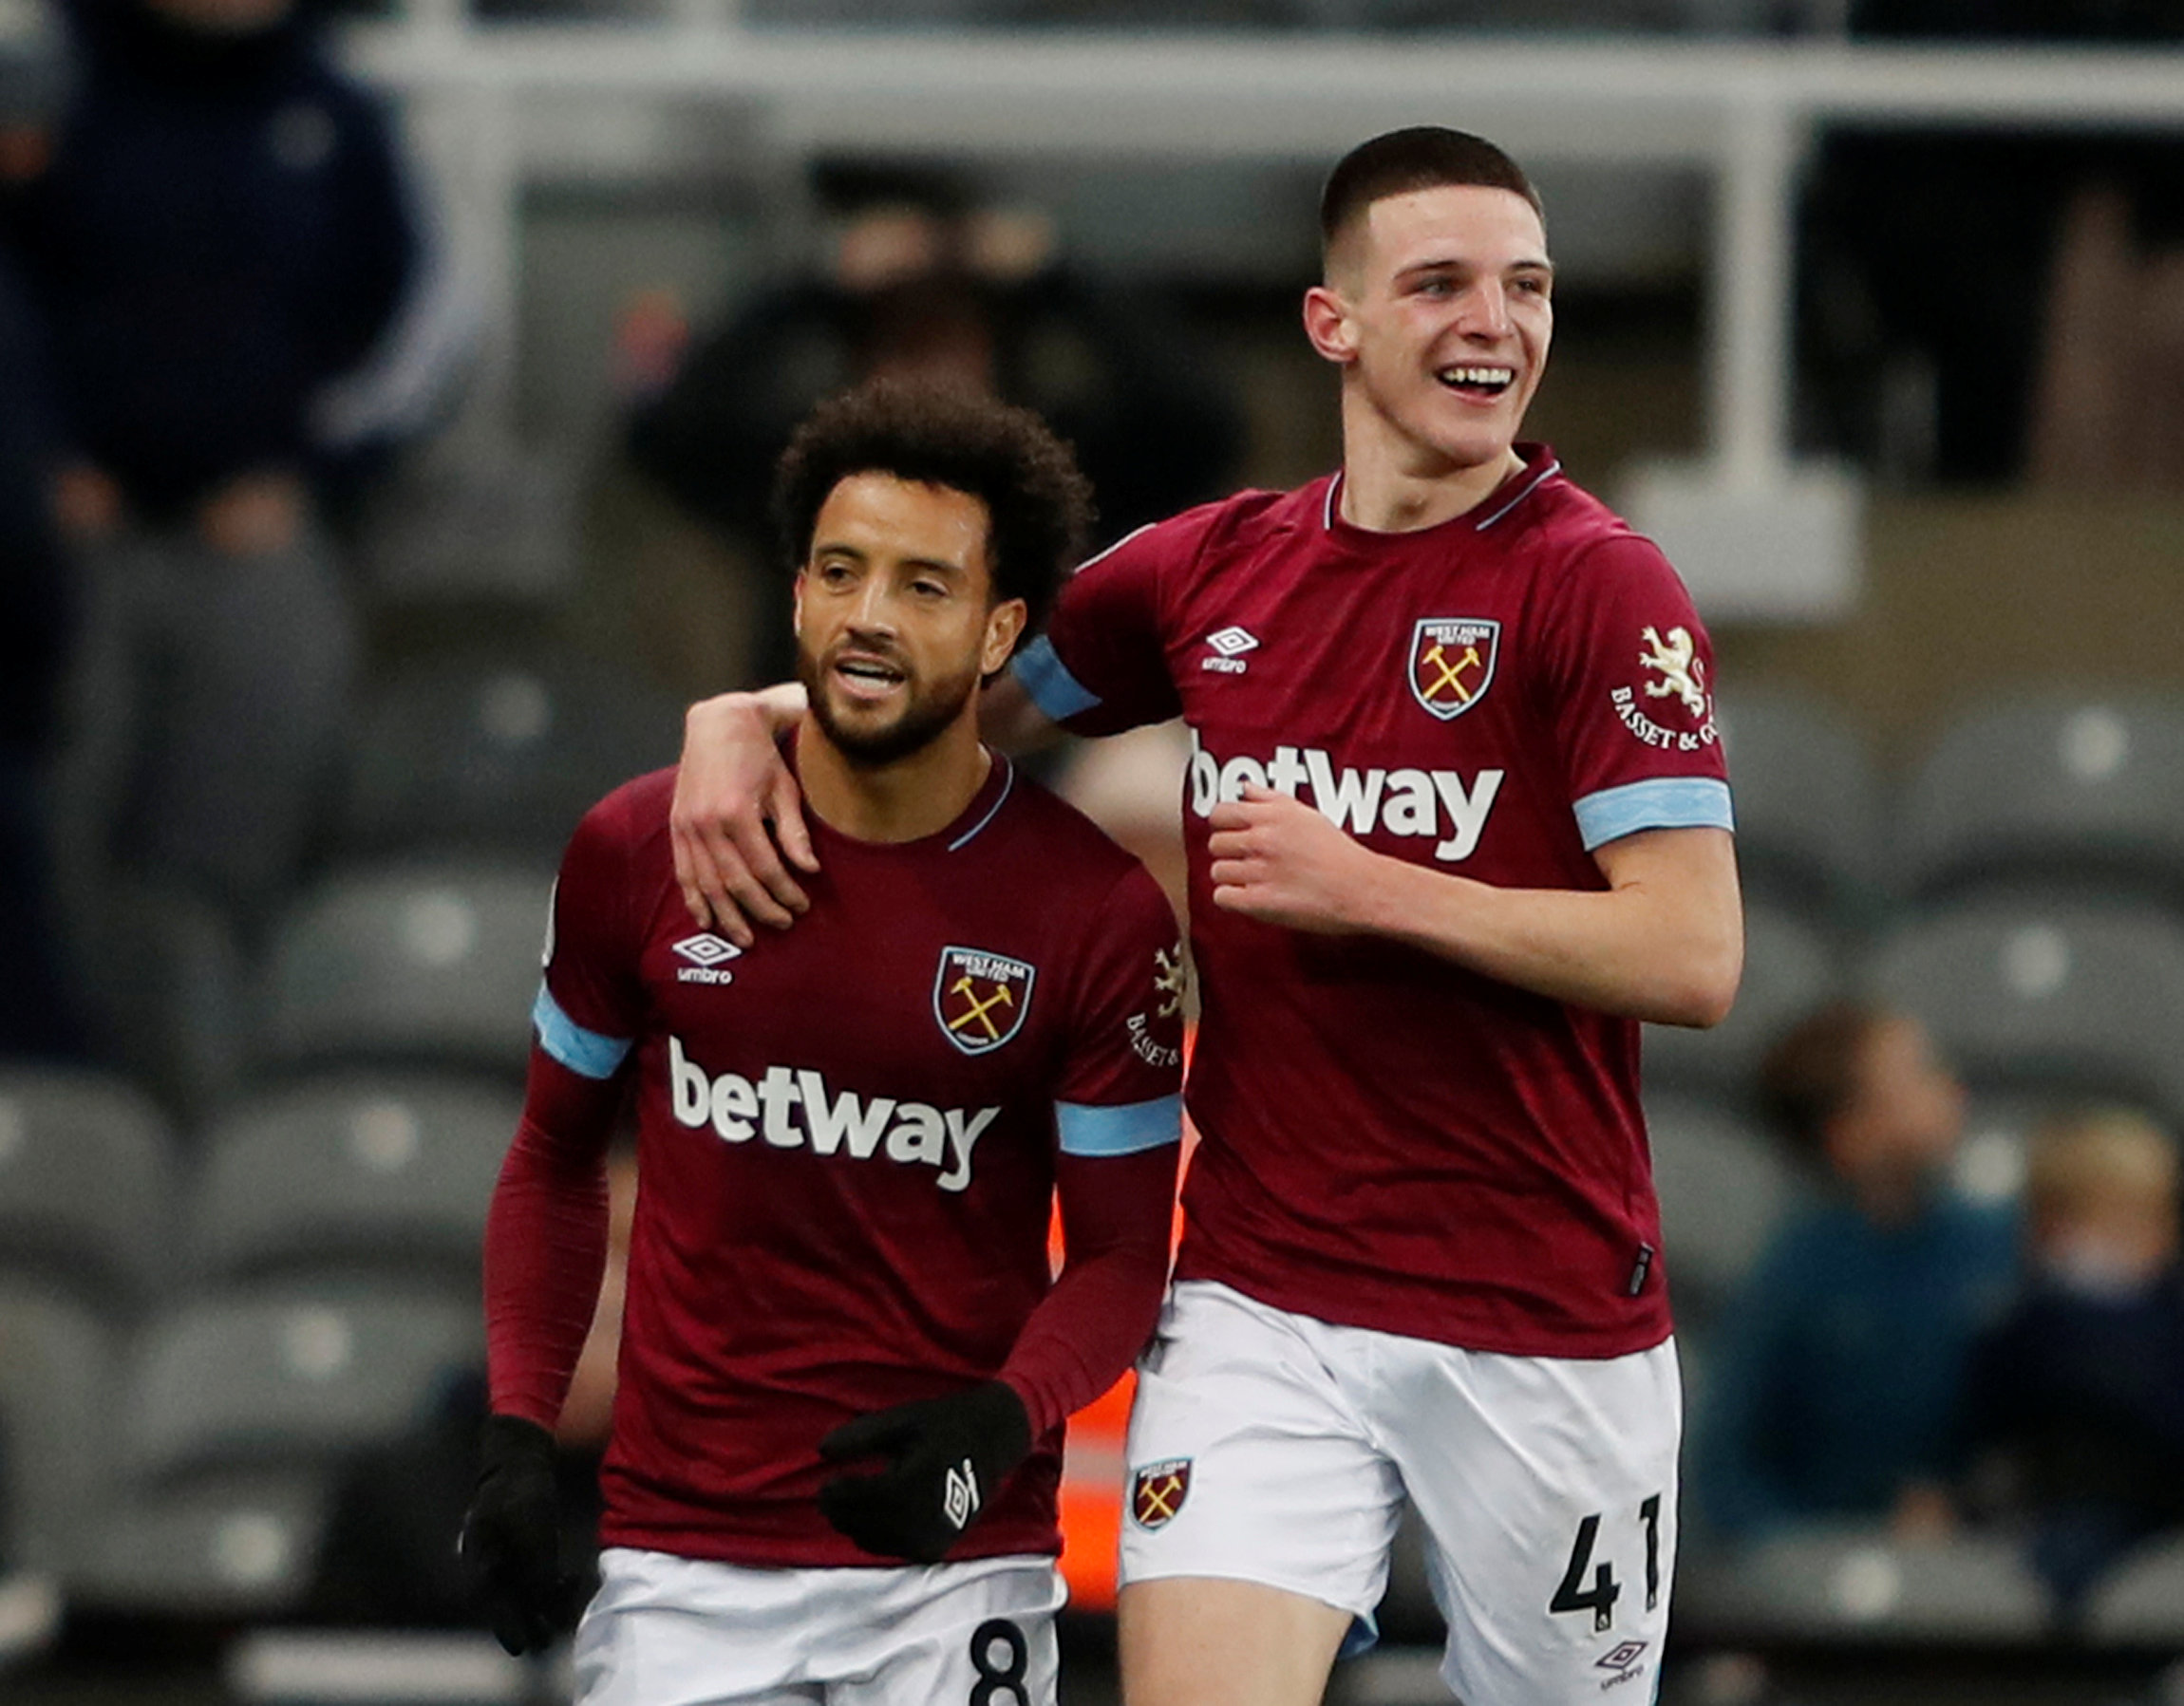 Newcastle 0 - 3 West Ham - Match Report & Highlights